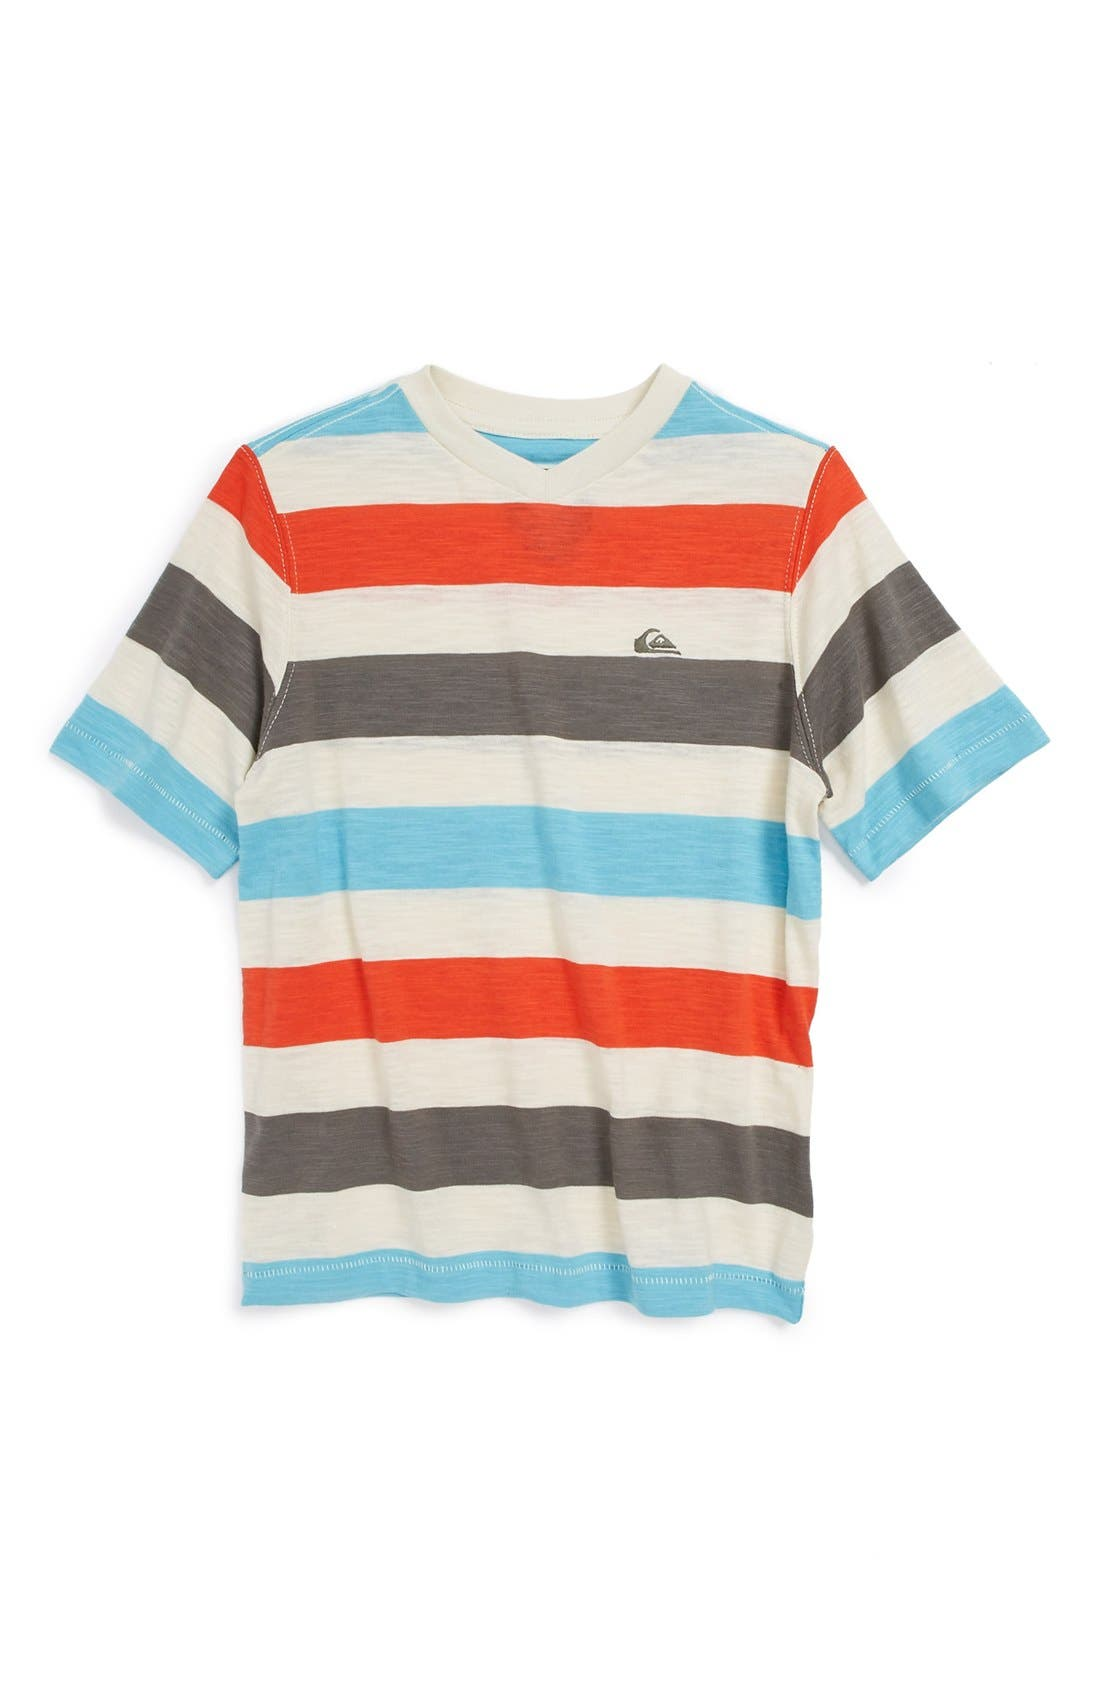 Main Image - Quiksilver 'Tower Rip' T-Shirt (Little Boys)